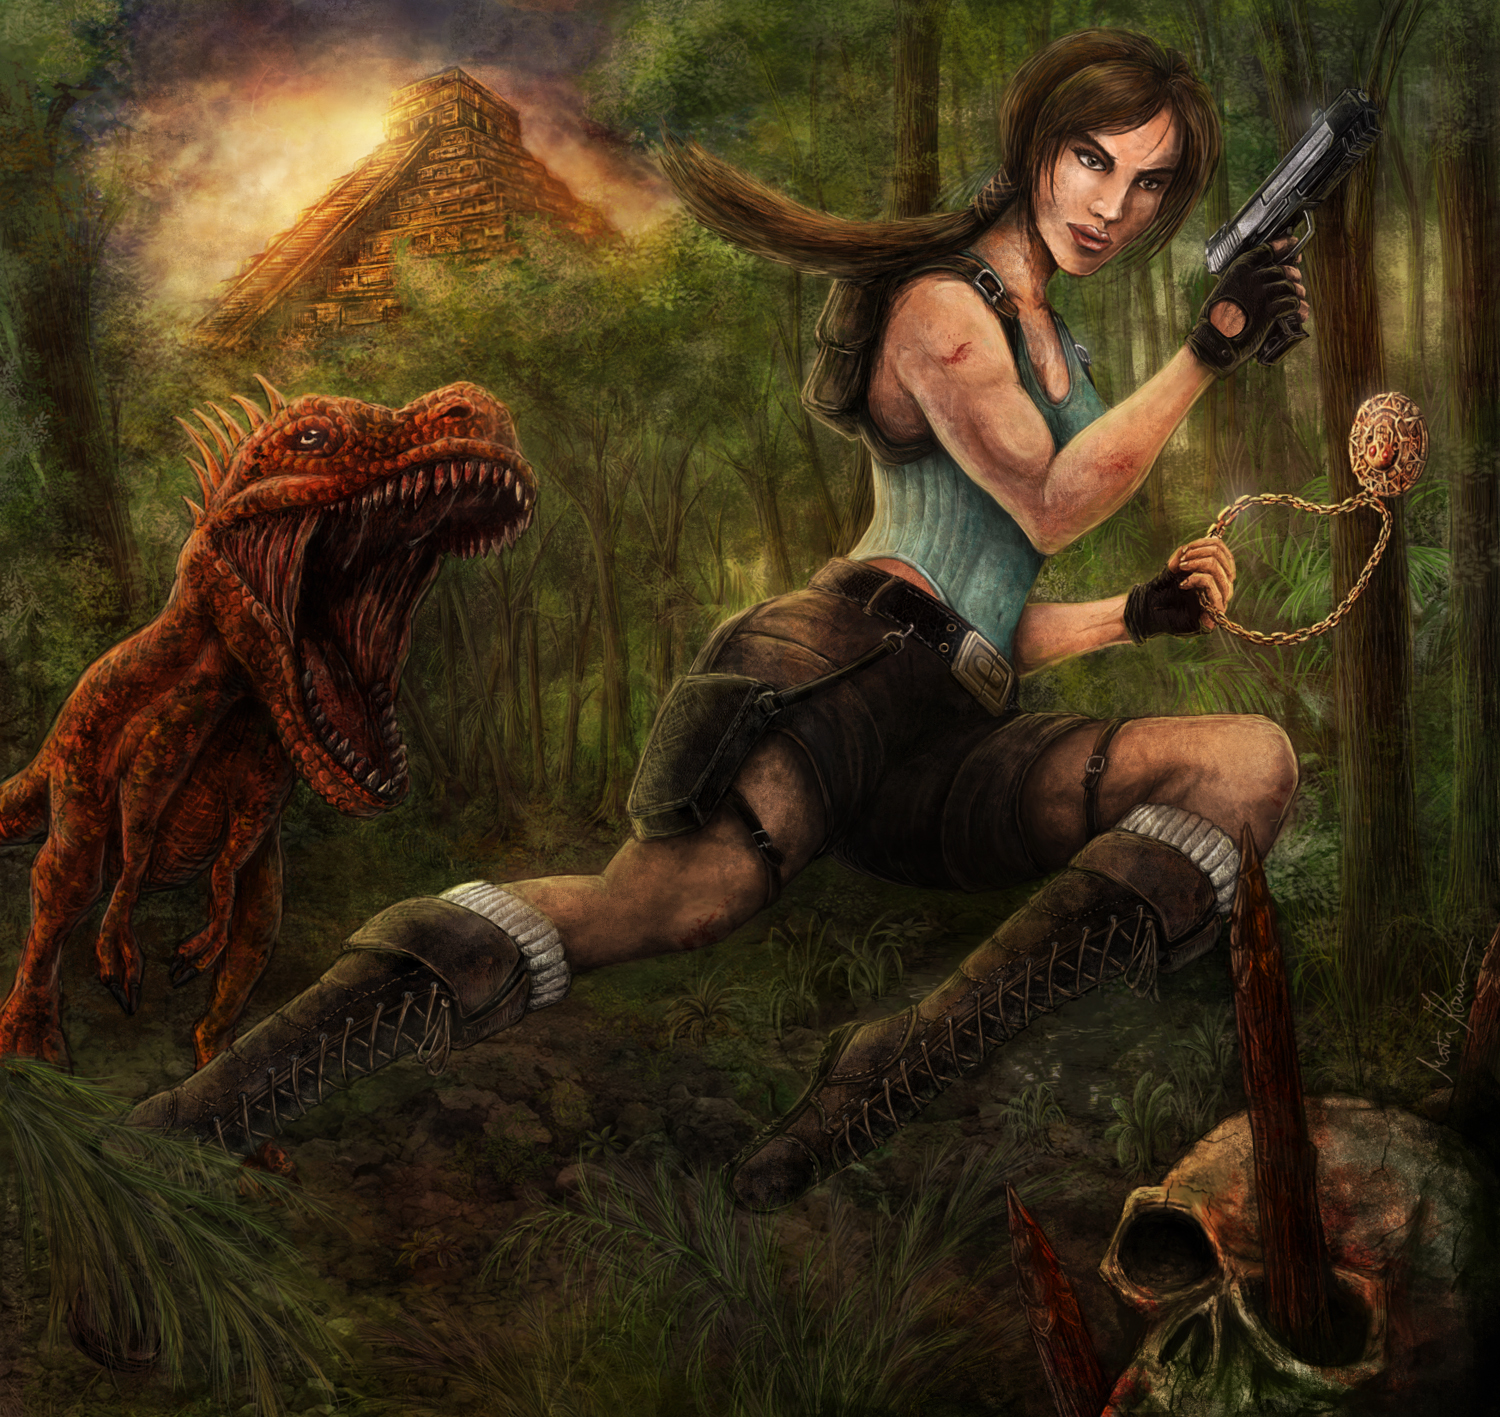 Lara Croft - Tomb Raider by mkozmon